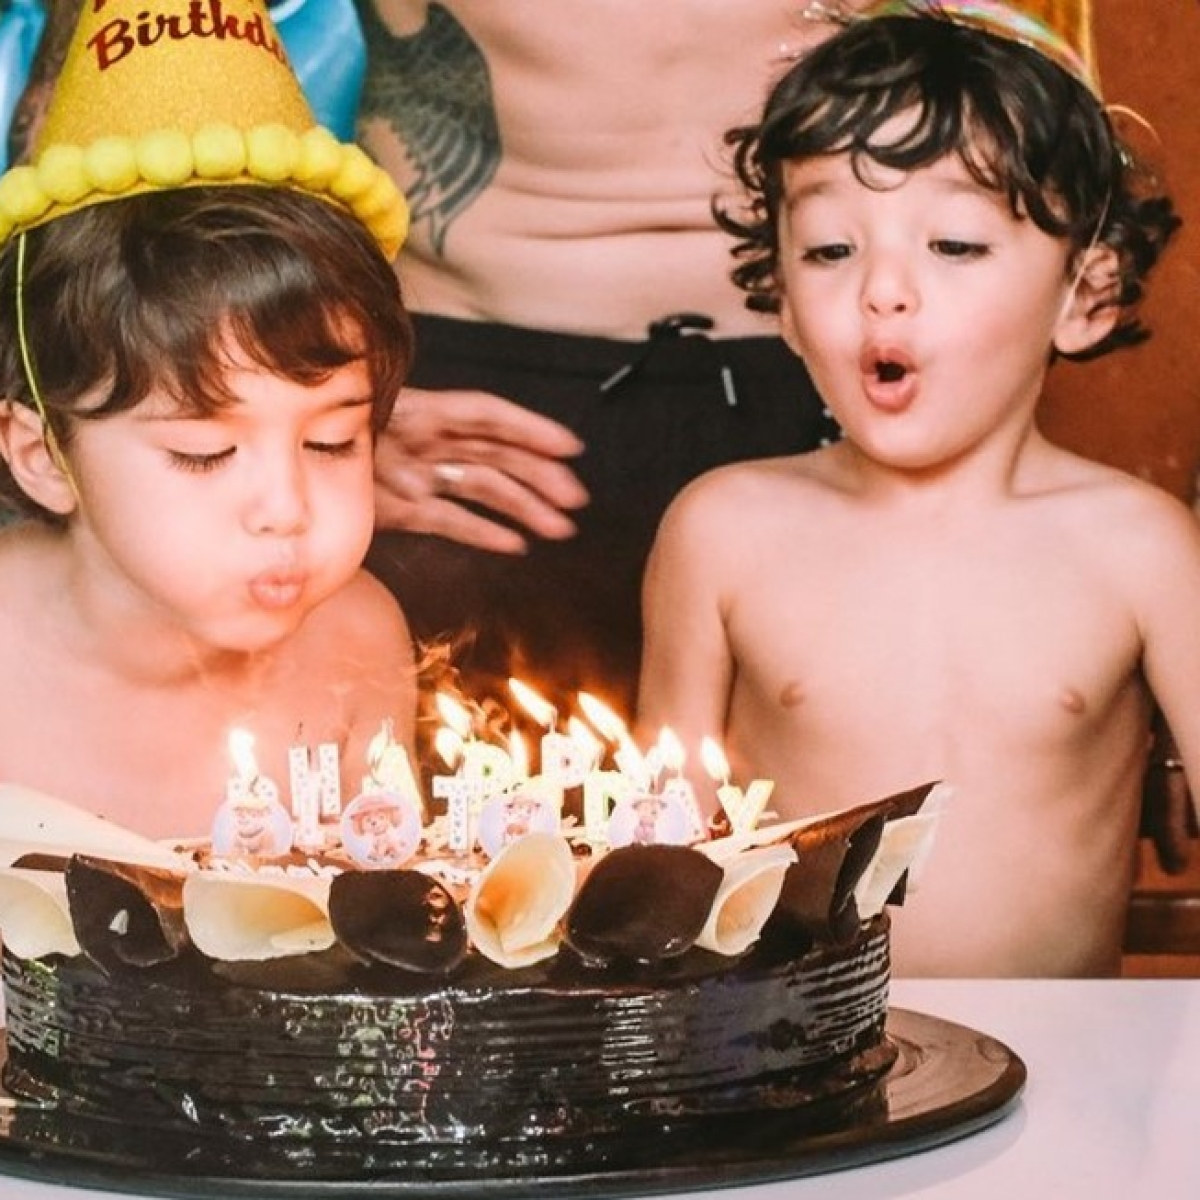 Sunny Leone shares an emotional note as her twins Noah and Asher turn 3